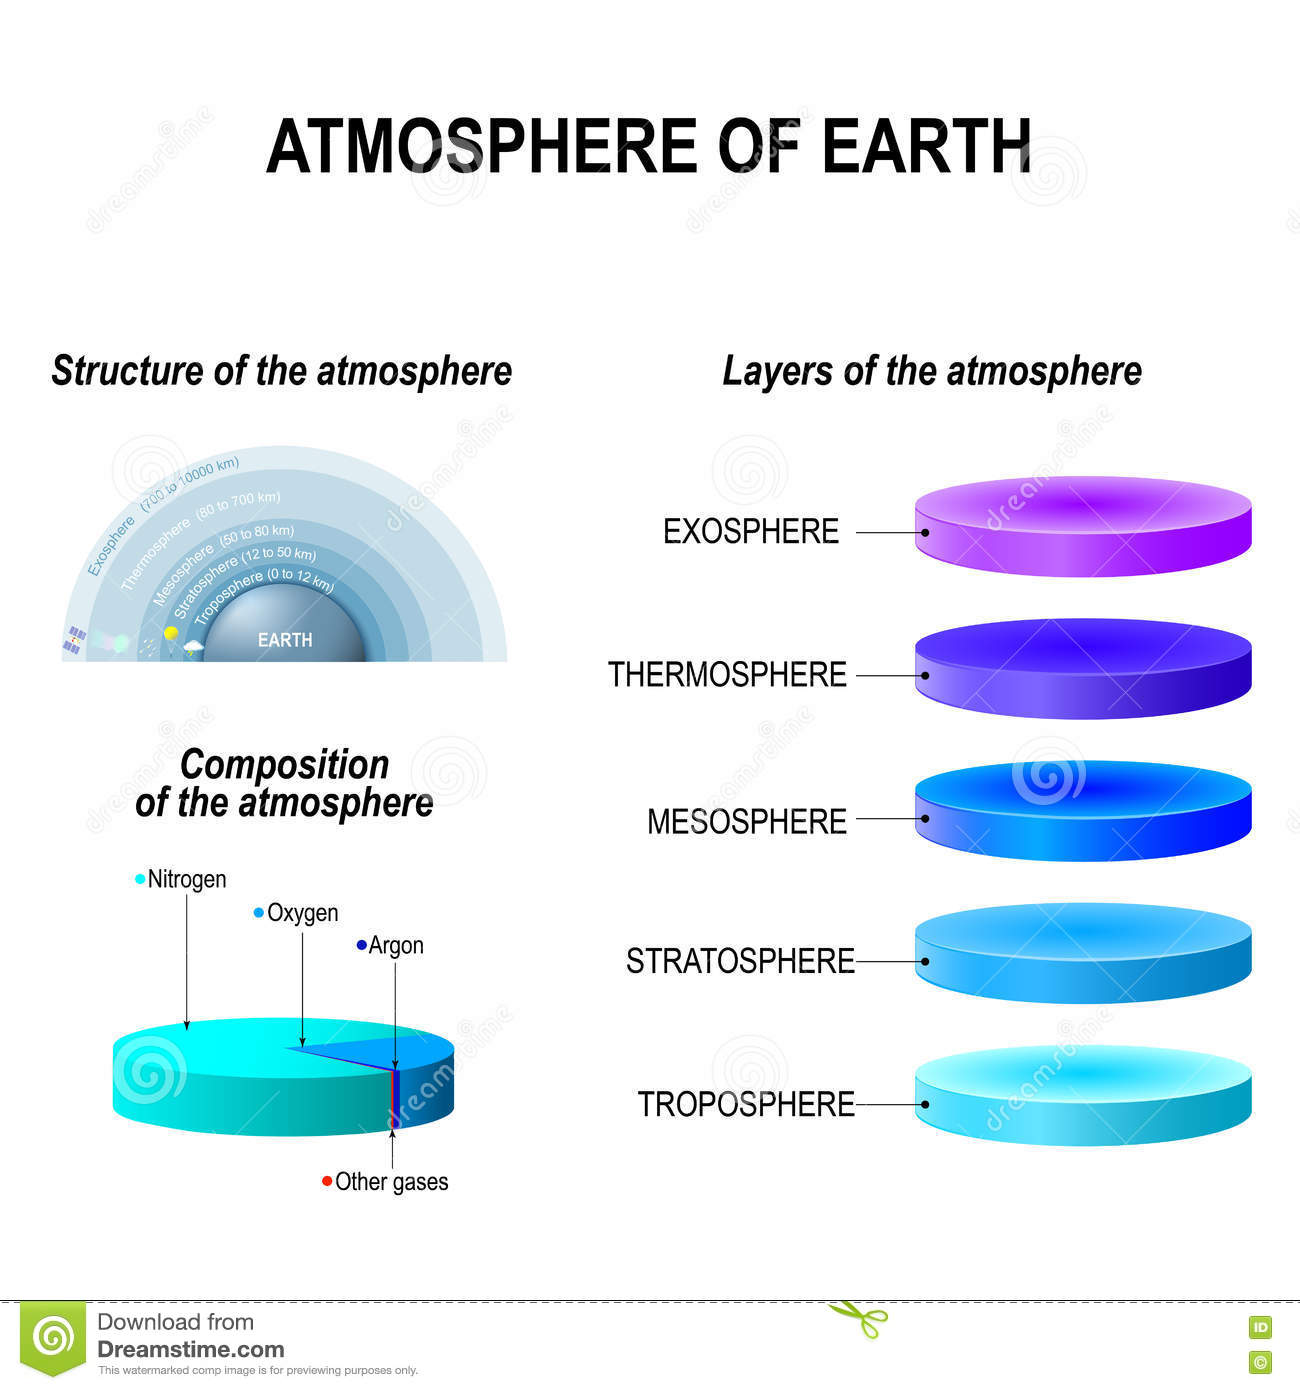 hight resolution of atmosphere of earth layers structure and composition of the atmosphere exosphere thermosphere mesosphere stratosphere troposphere infographic vector